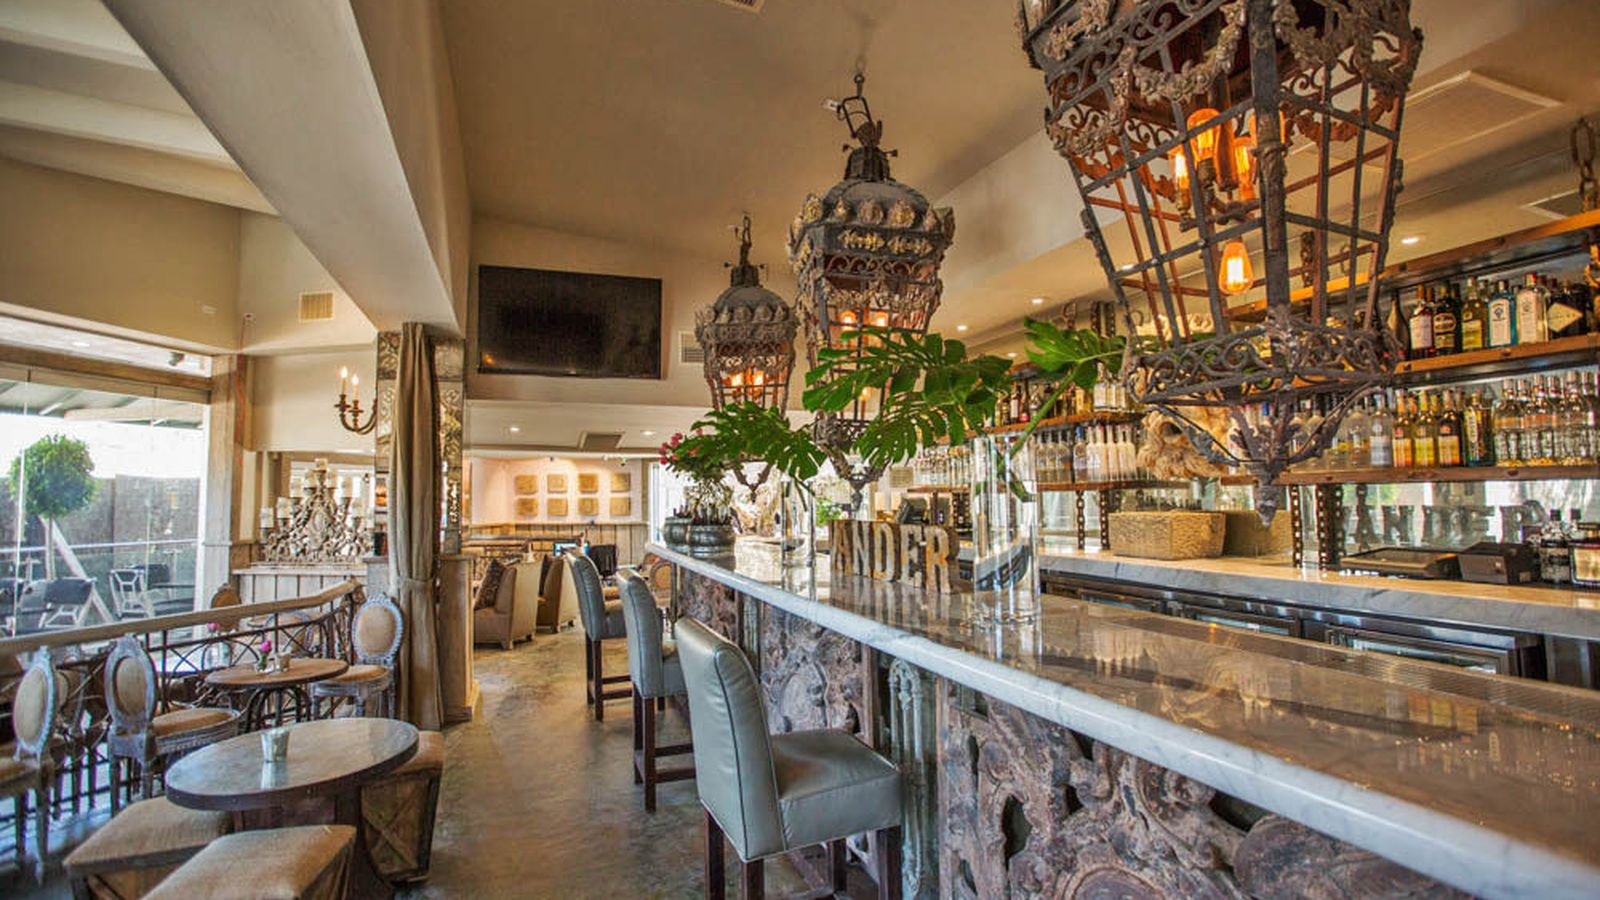 Pump lounge by lisa vanderpump opening may 16 eater la for Kitchen 24 west hollywood